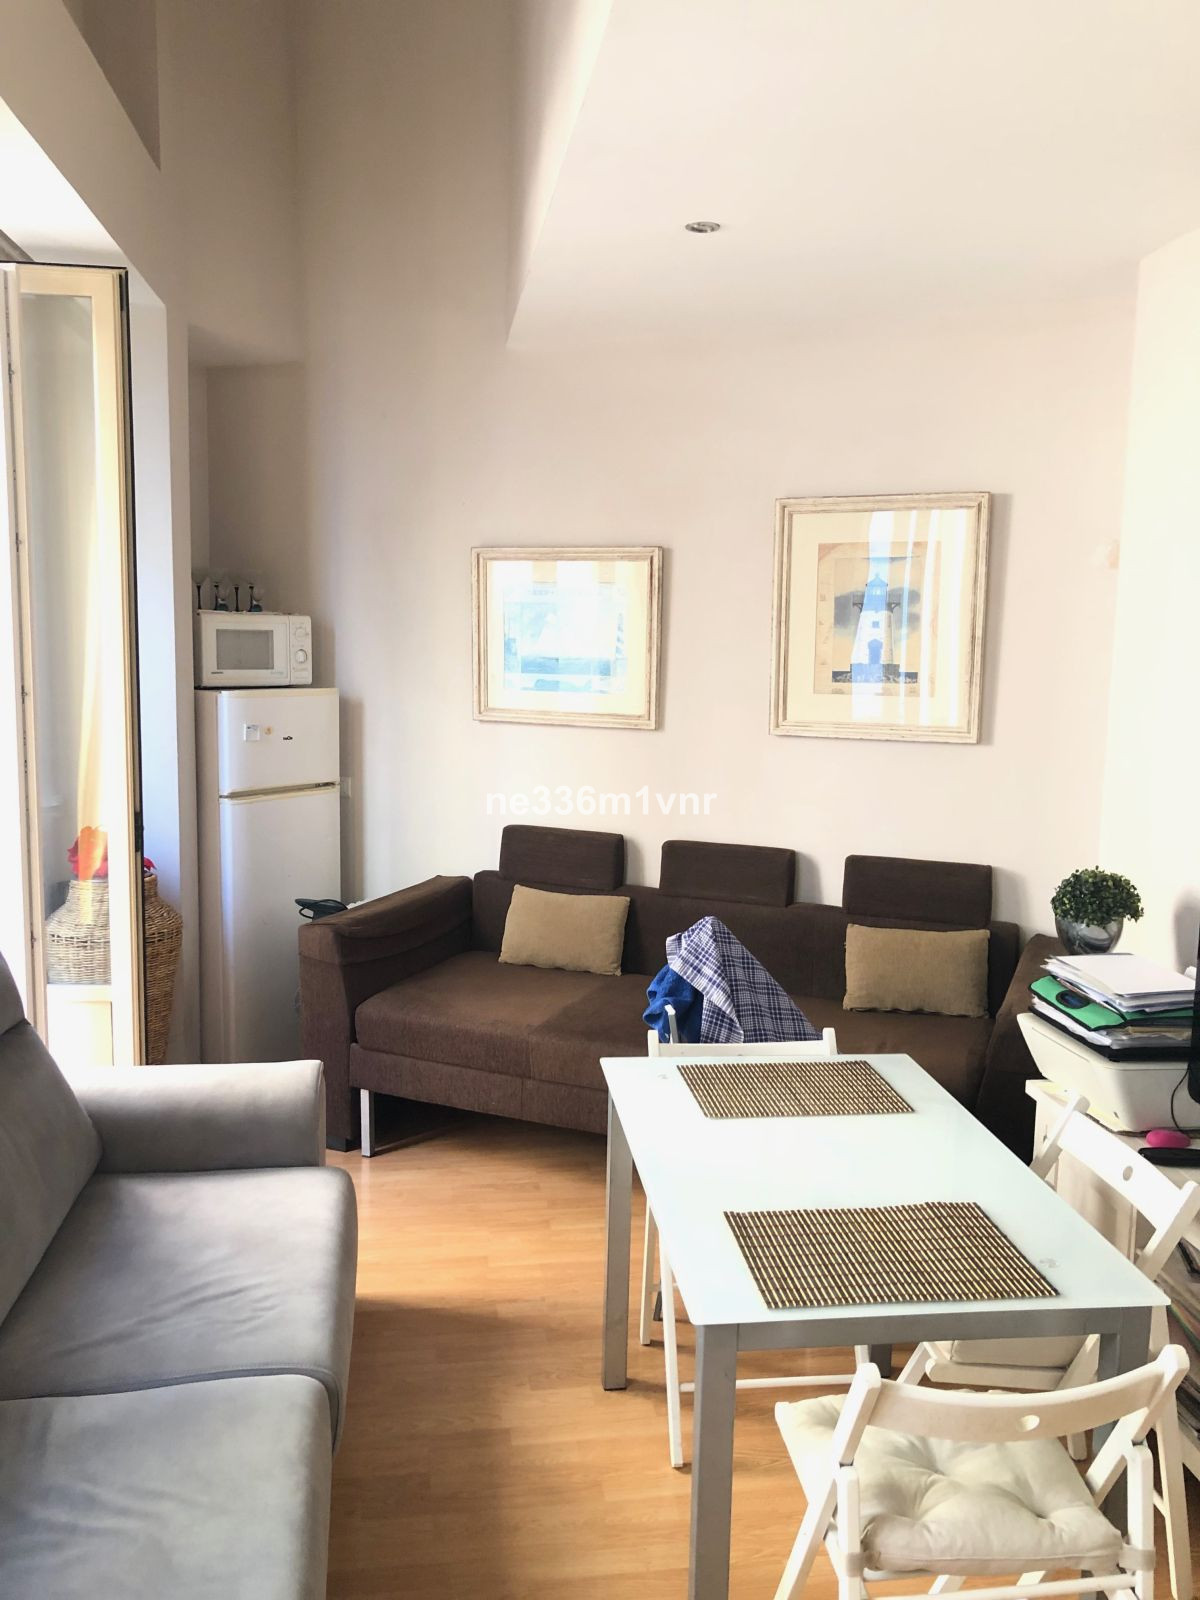 Apartment-study in the heart of downtown Malaga in renovated building, with floating platform, two b, Spain